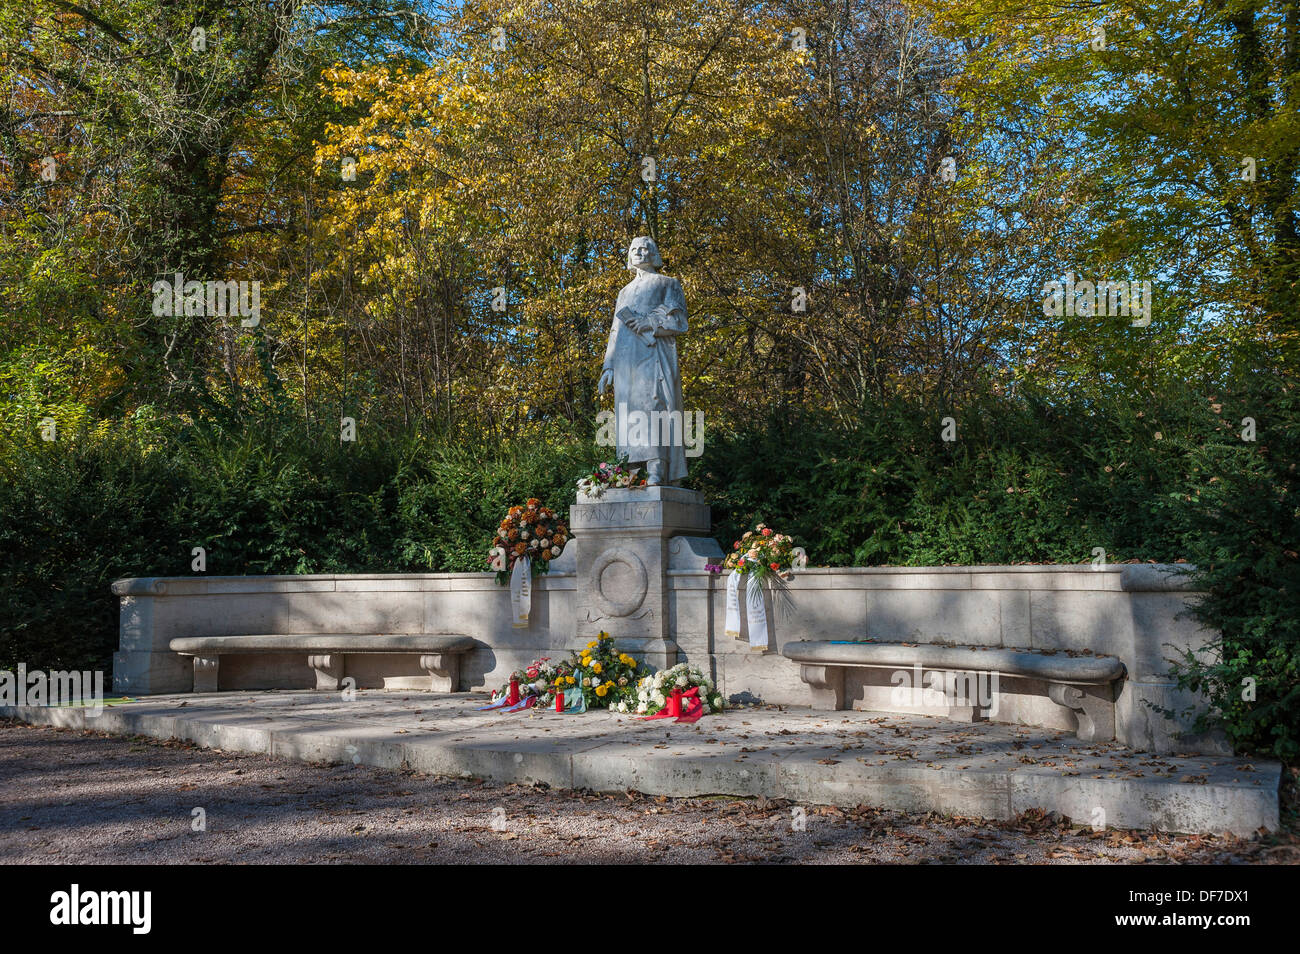 Franz Liszt Memorial, marble statue on a pedestal, next to benches and garlands, in Park an der Ilm park, Weimar, Thuringia - Stock Image